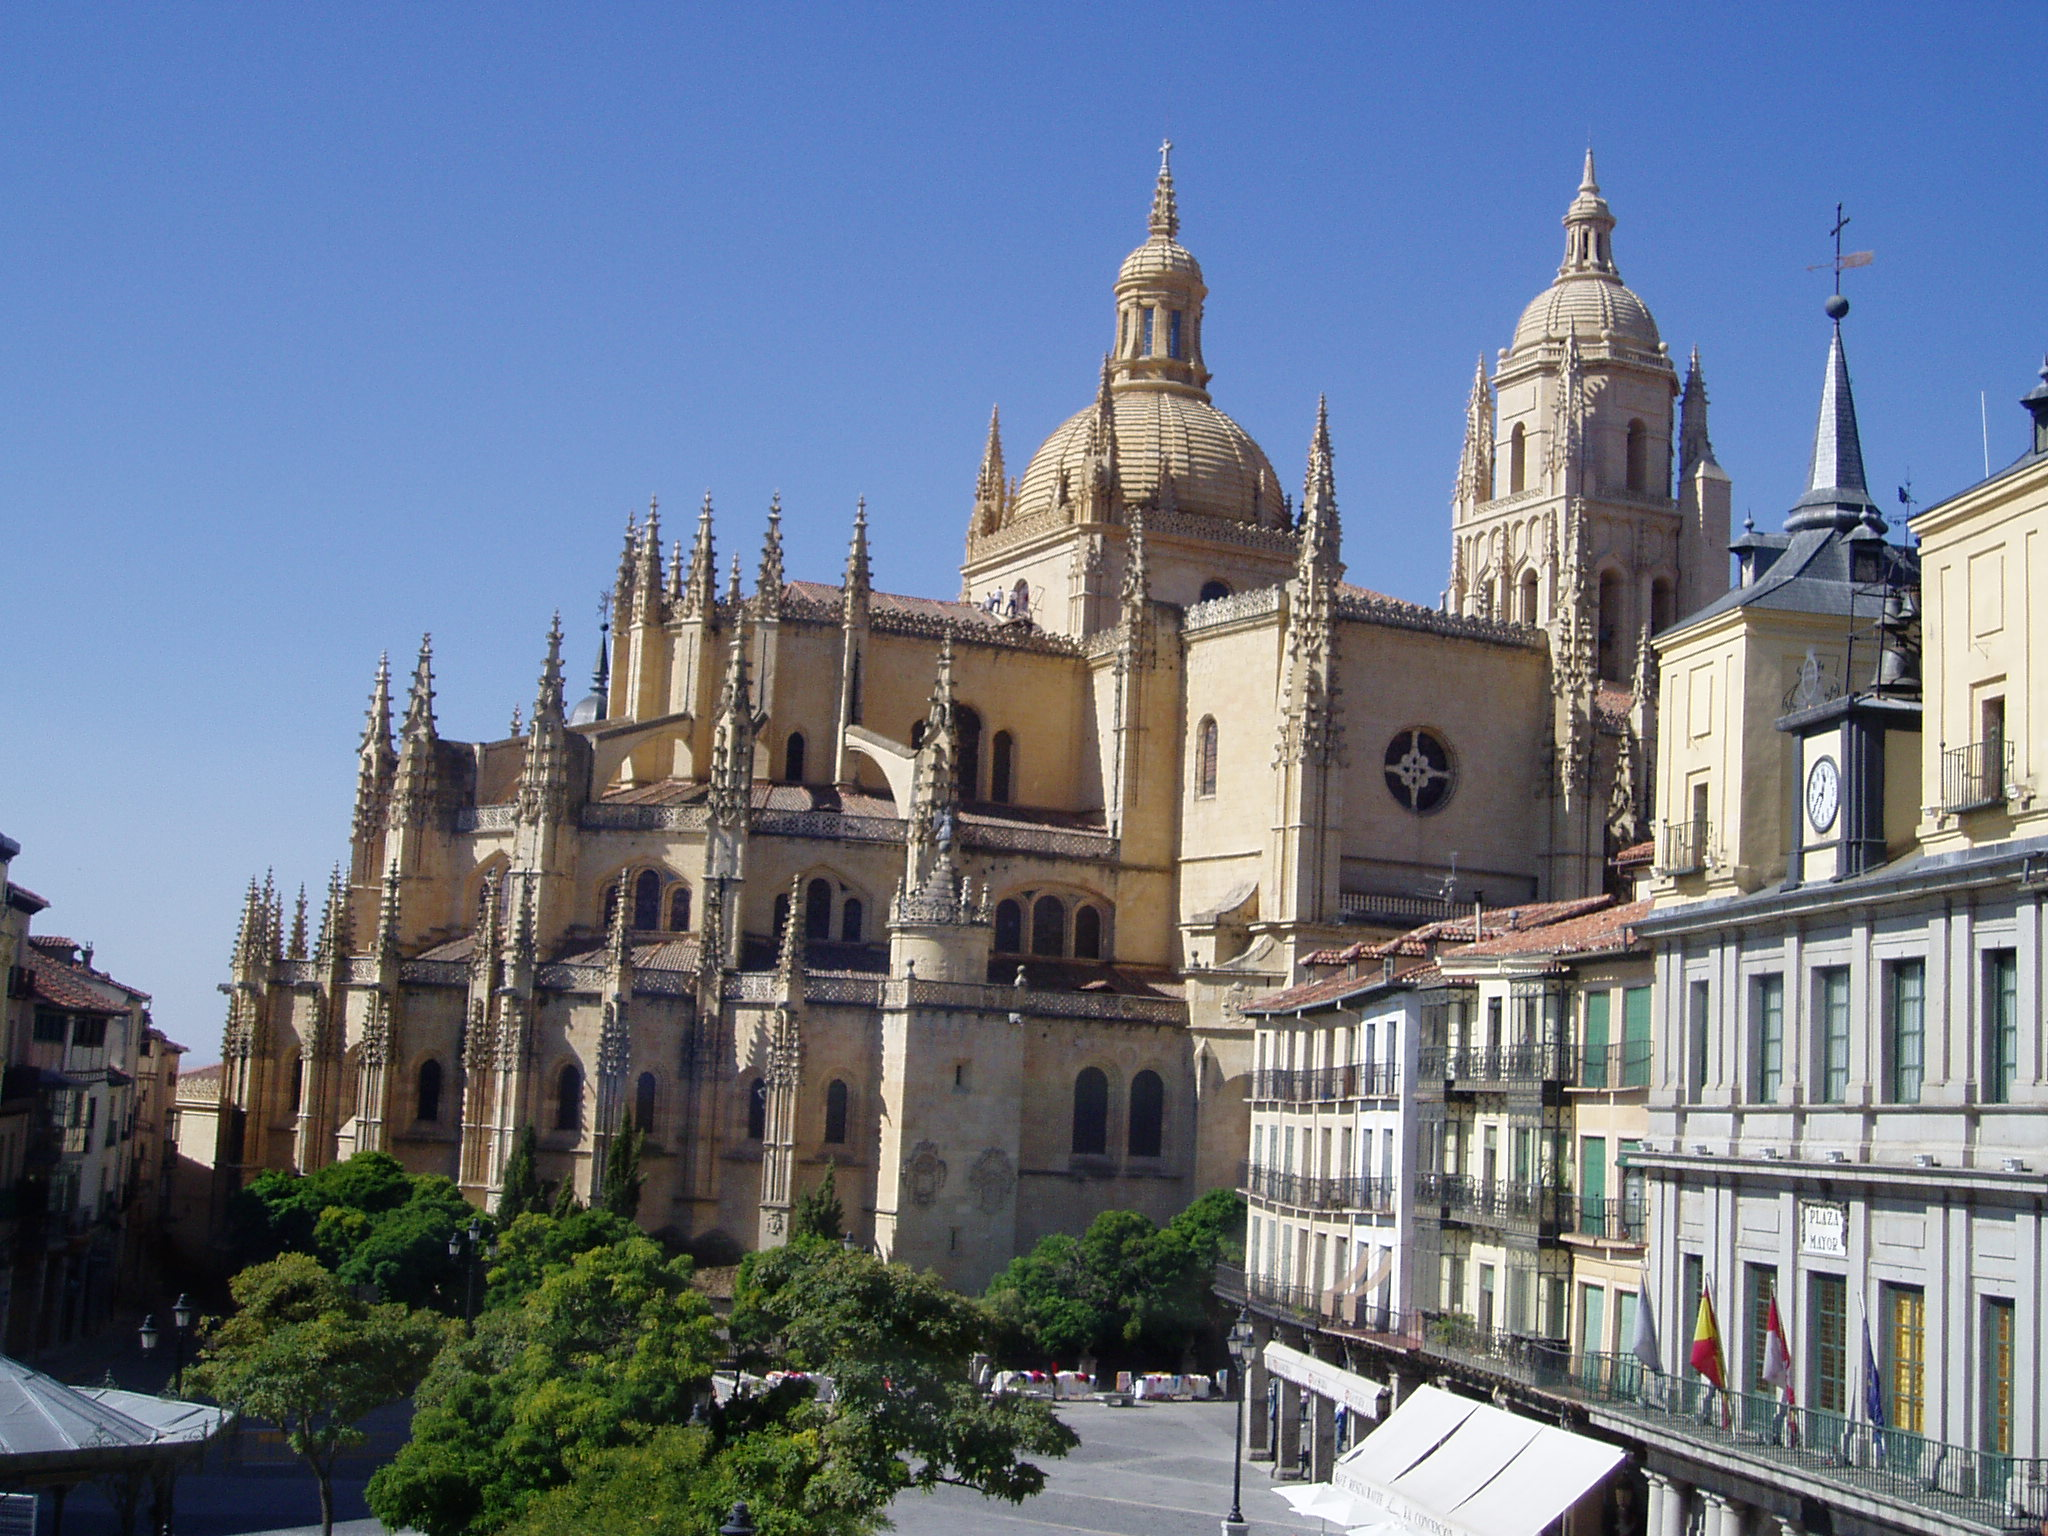 Looking to the future in the Cathedral of Segovia